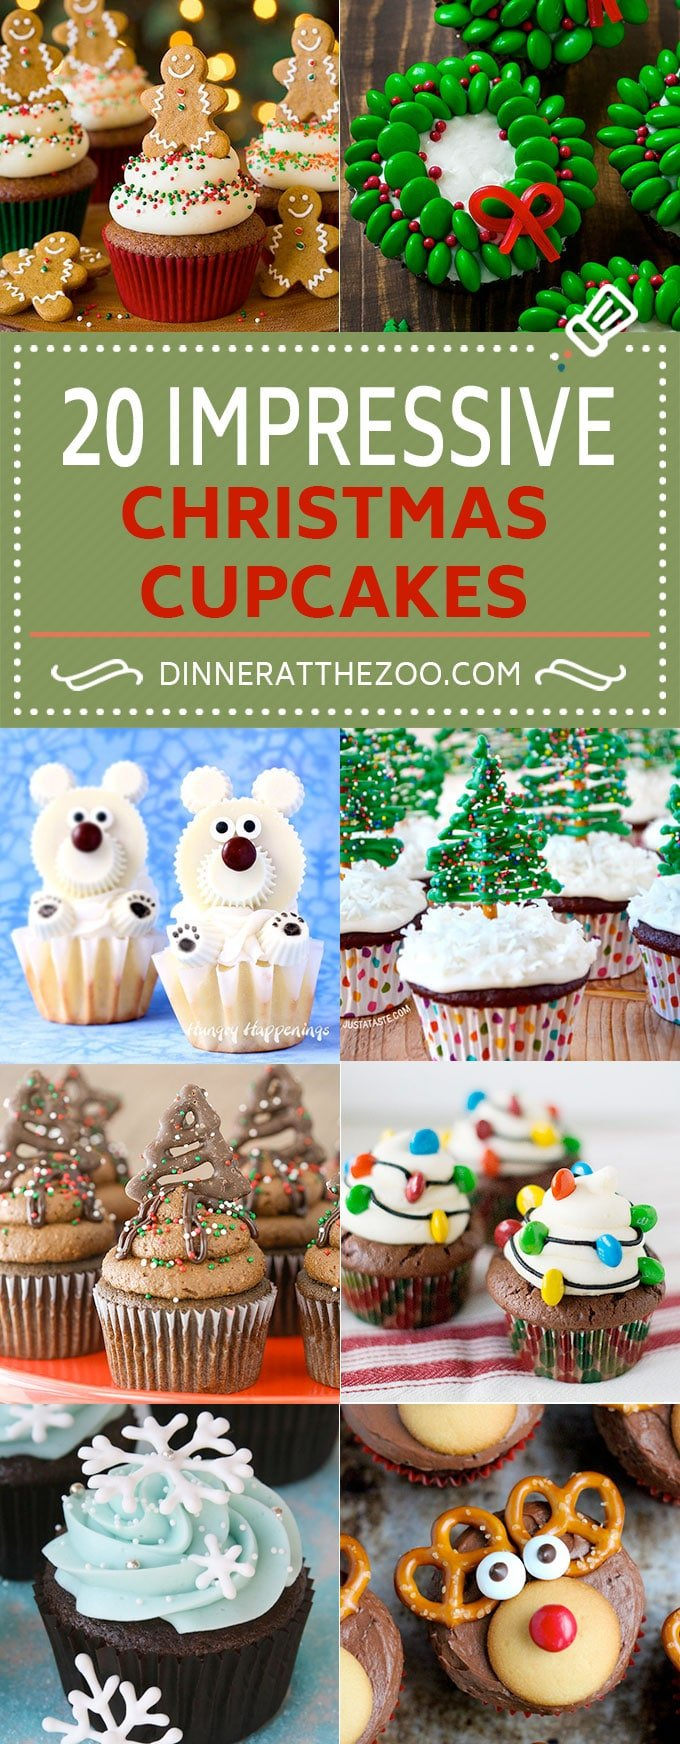 20 Impressive Christmas Cupcake Recipes | Holiday Cupcakes | Christmas Cupcakes | Holiday Baking